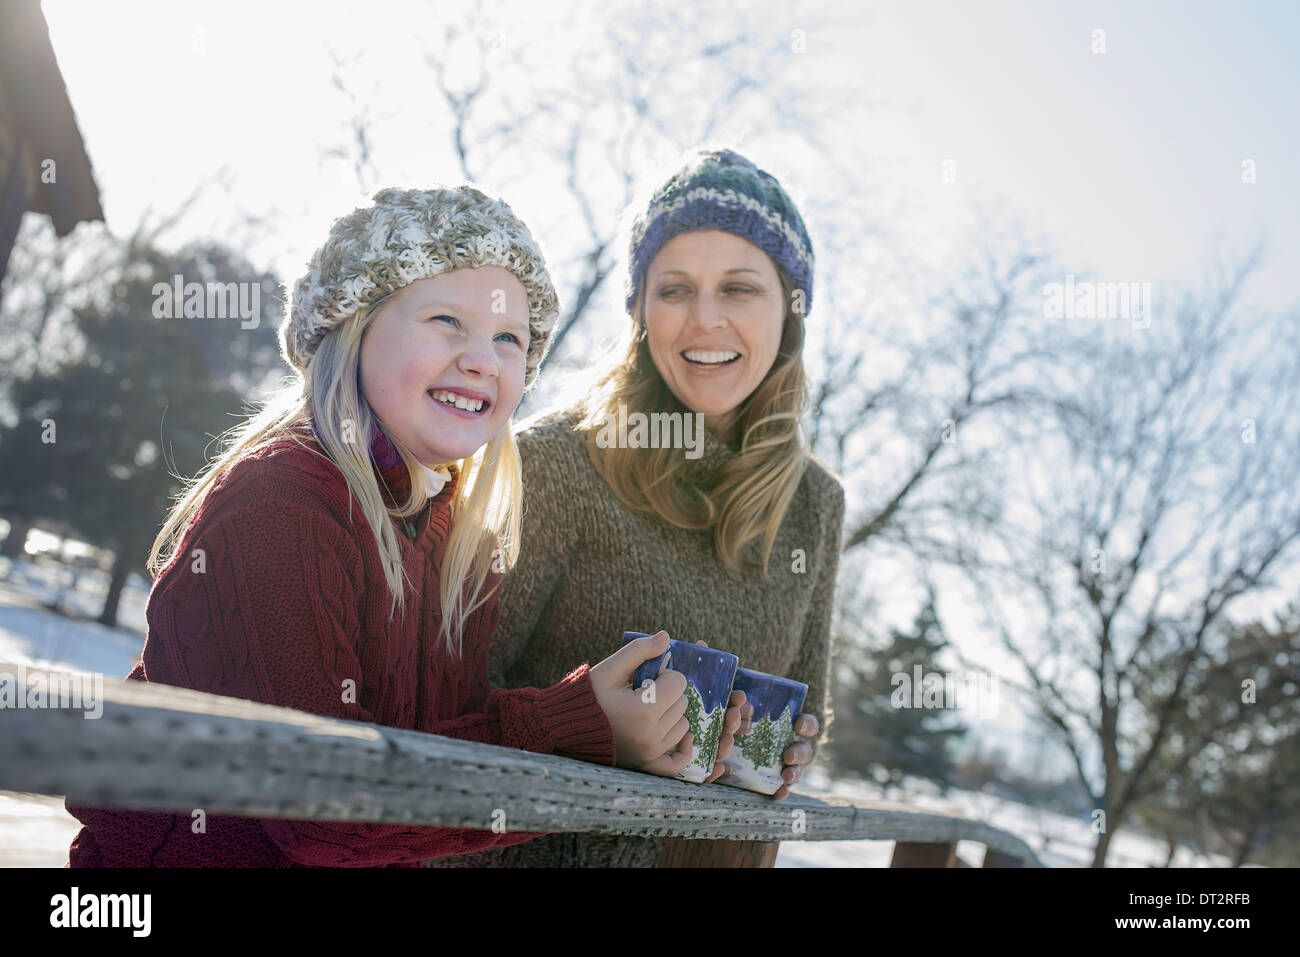 Winter scenery with snow on the ground A child and an adult having a hot drink on a cold day - Stock Image